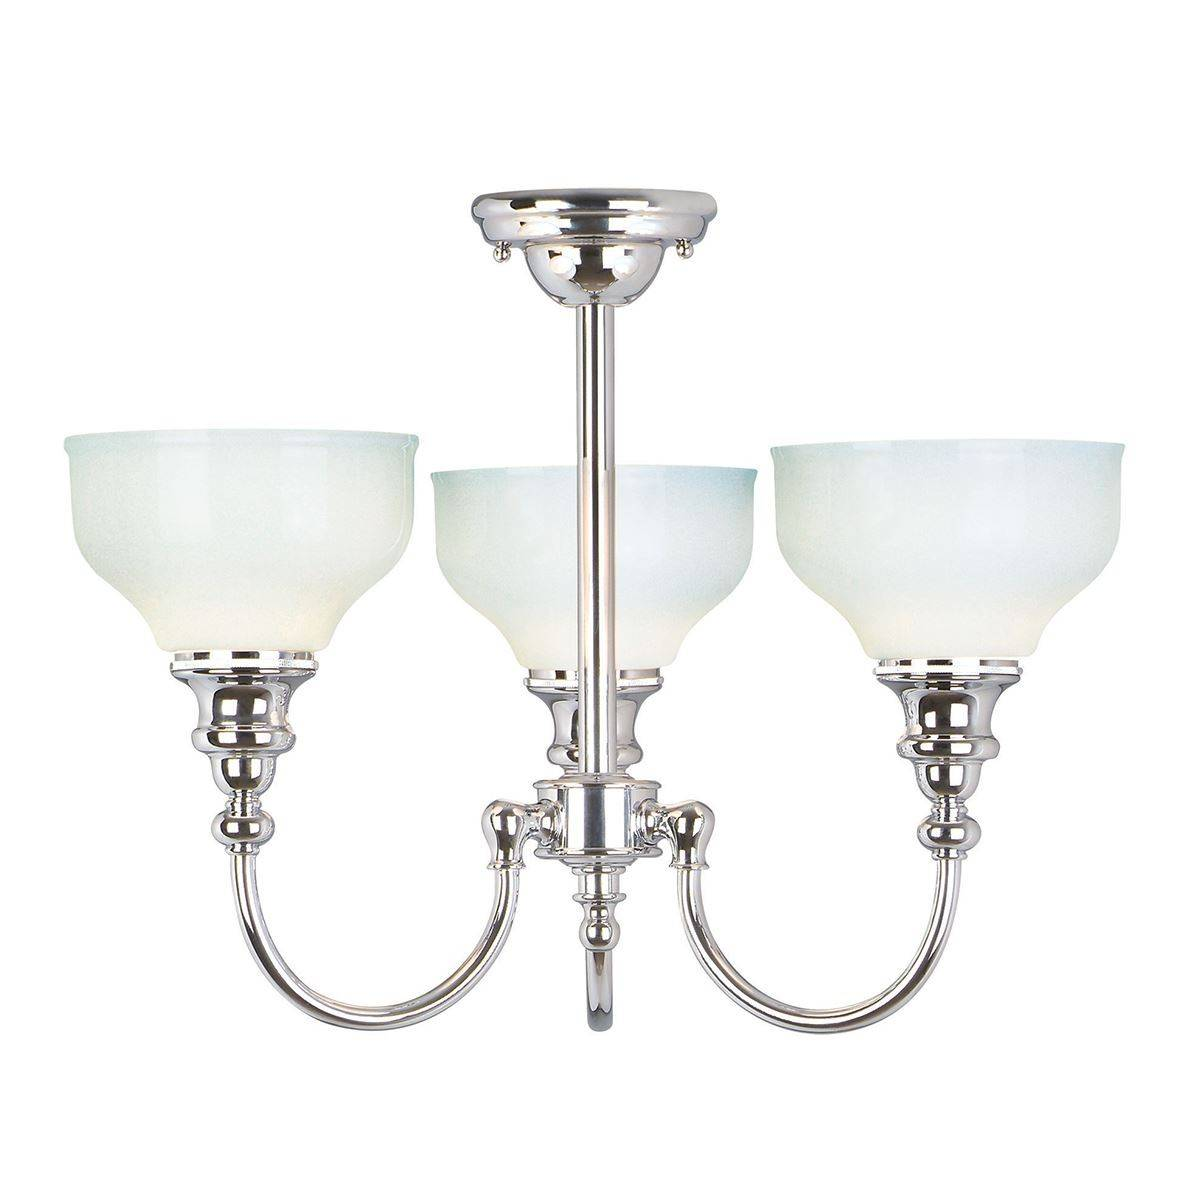 Bathroom Chandelier Lighting 3 Light Bathroom Chandelier Pendant Light Polished Chrome Ip44